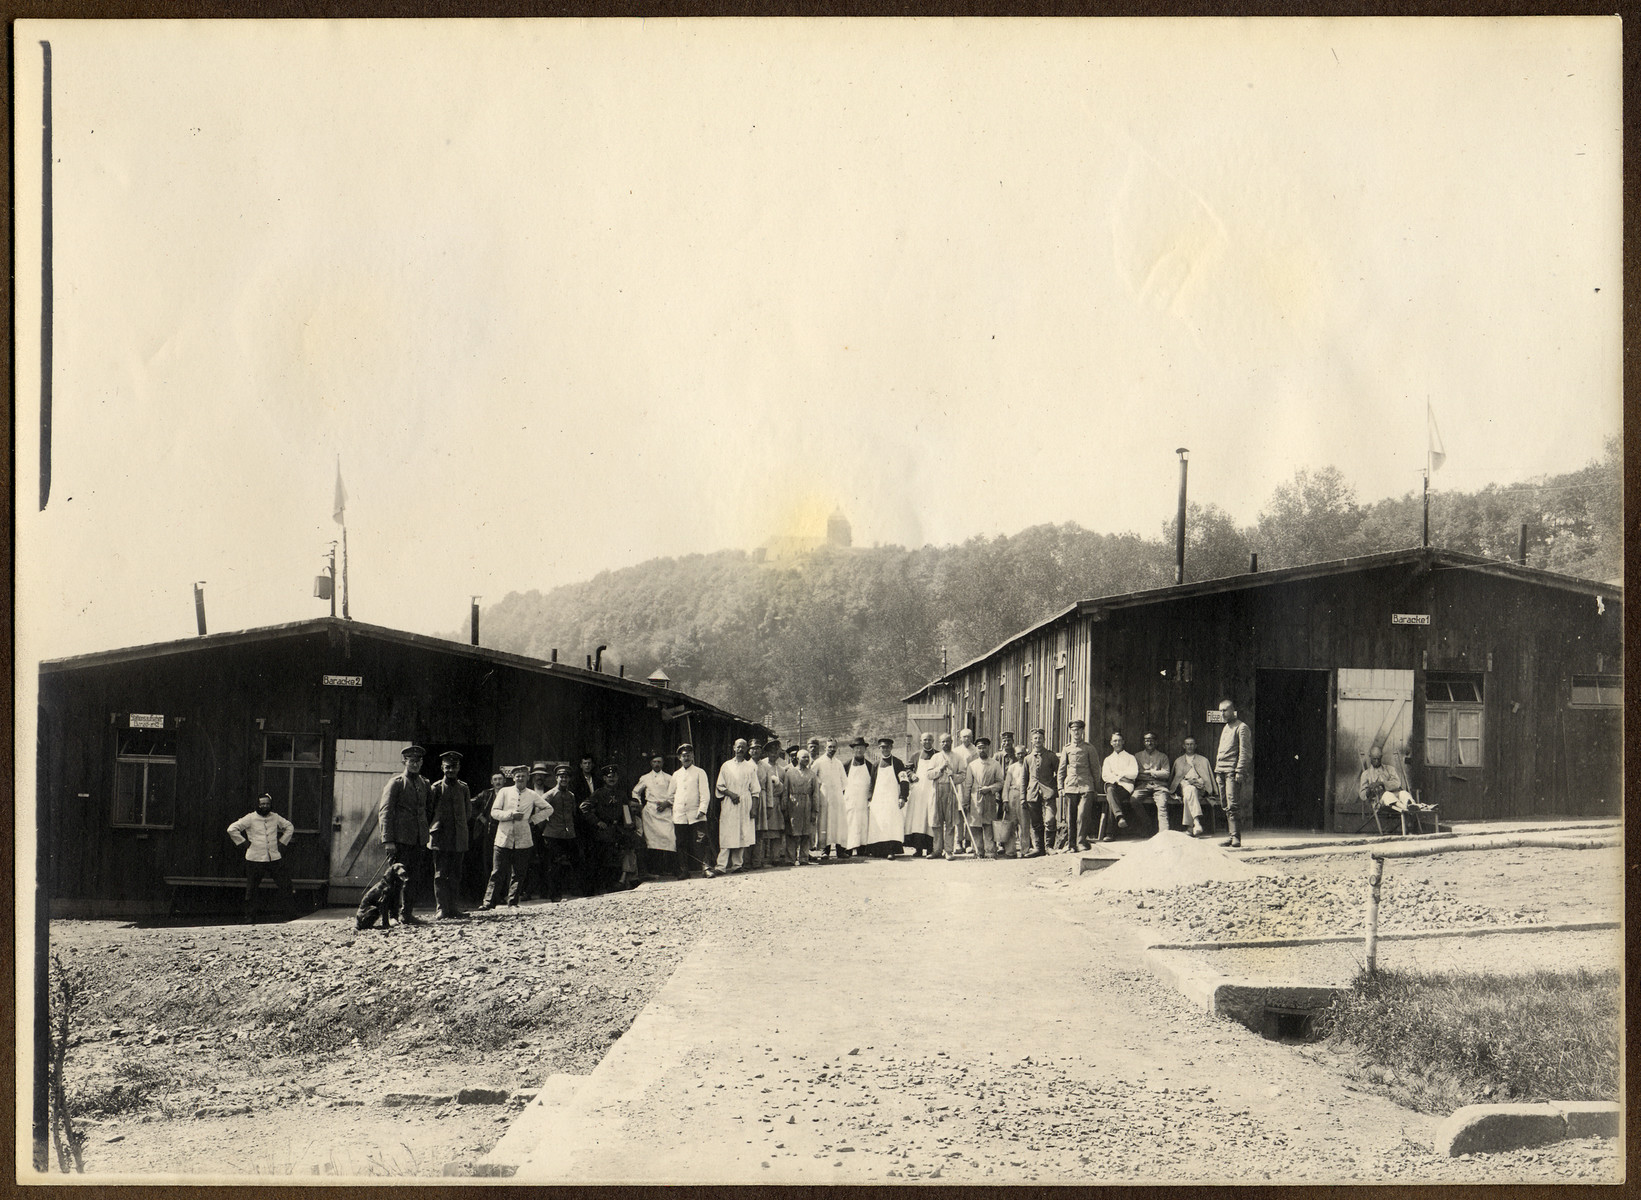 Prisoners and German camp personnel pose before barracks at a POW camp in Montmédy, France during World War I.